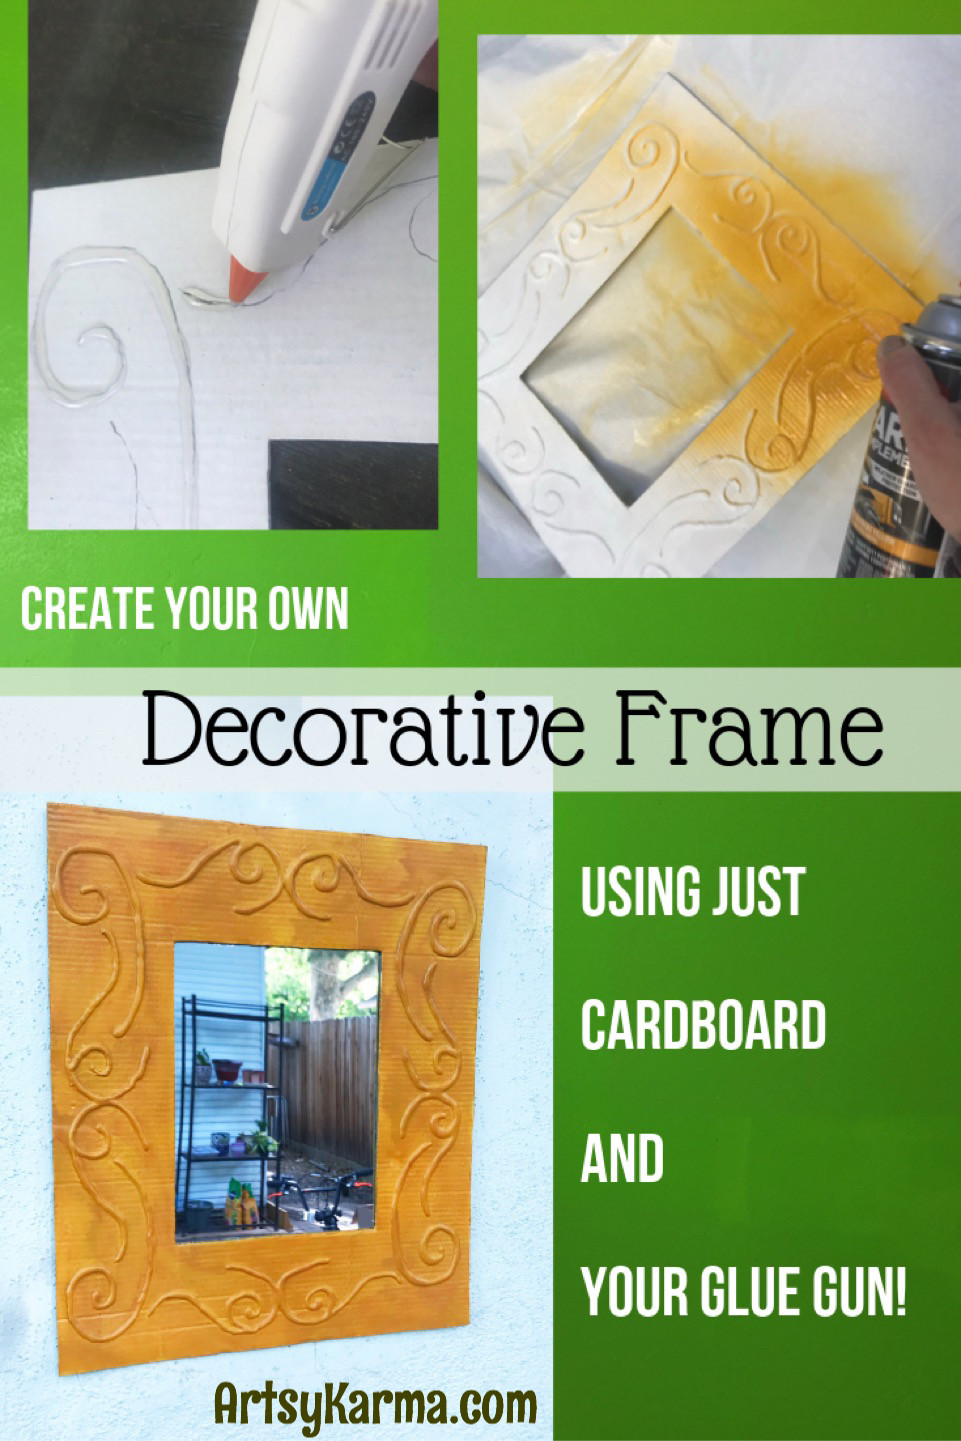 create your own decorative frame using cardboard and a glue gun